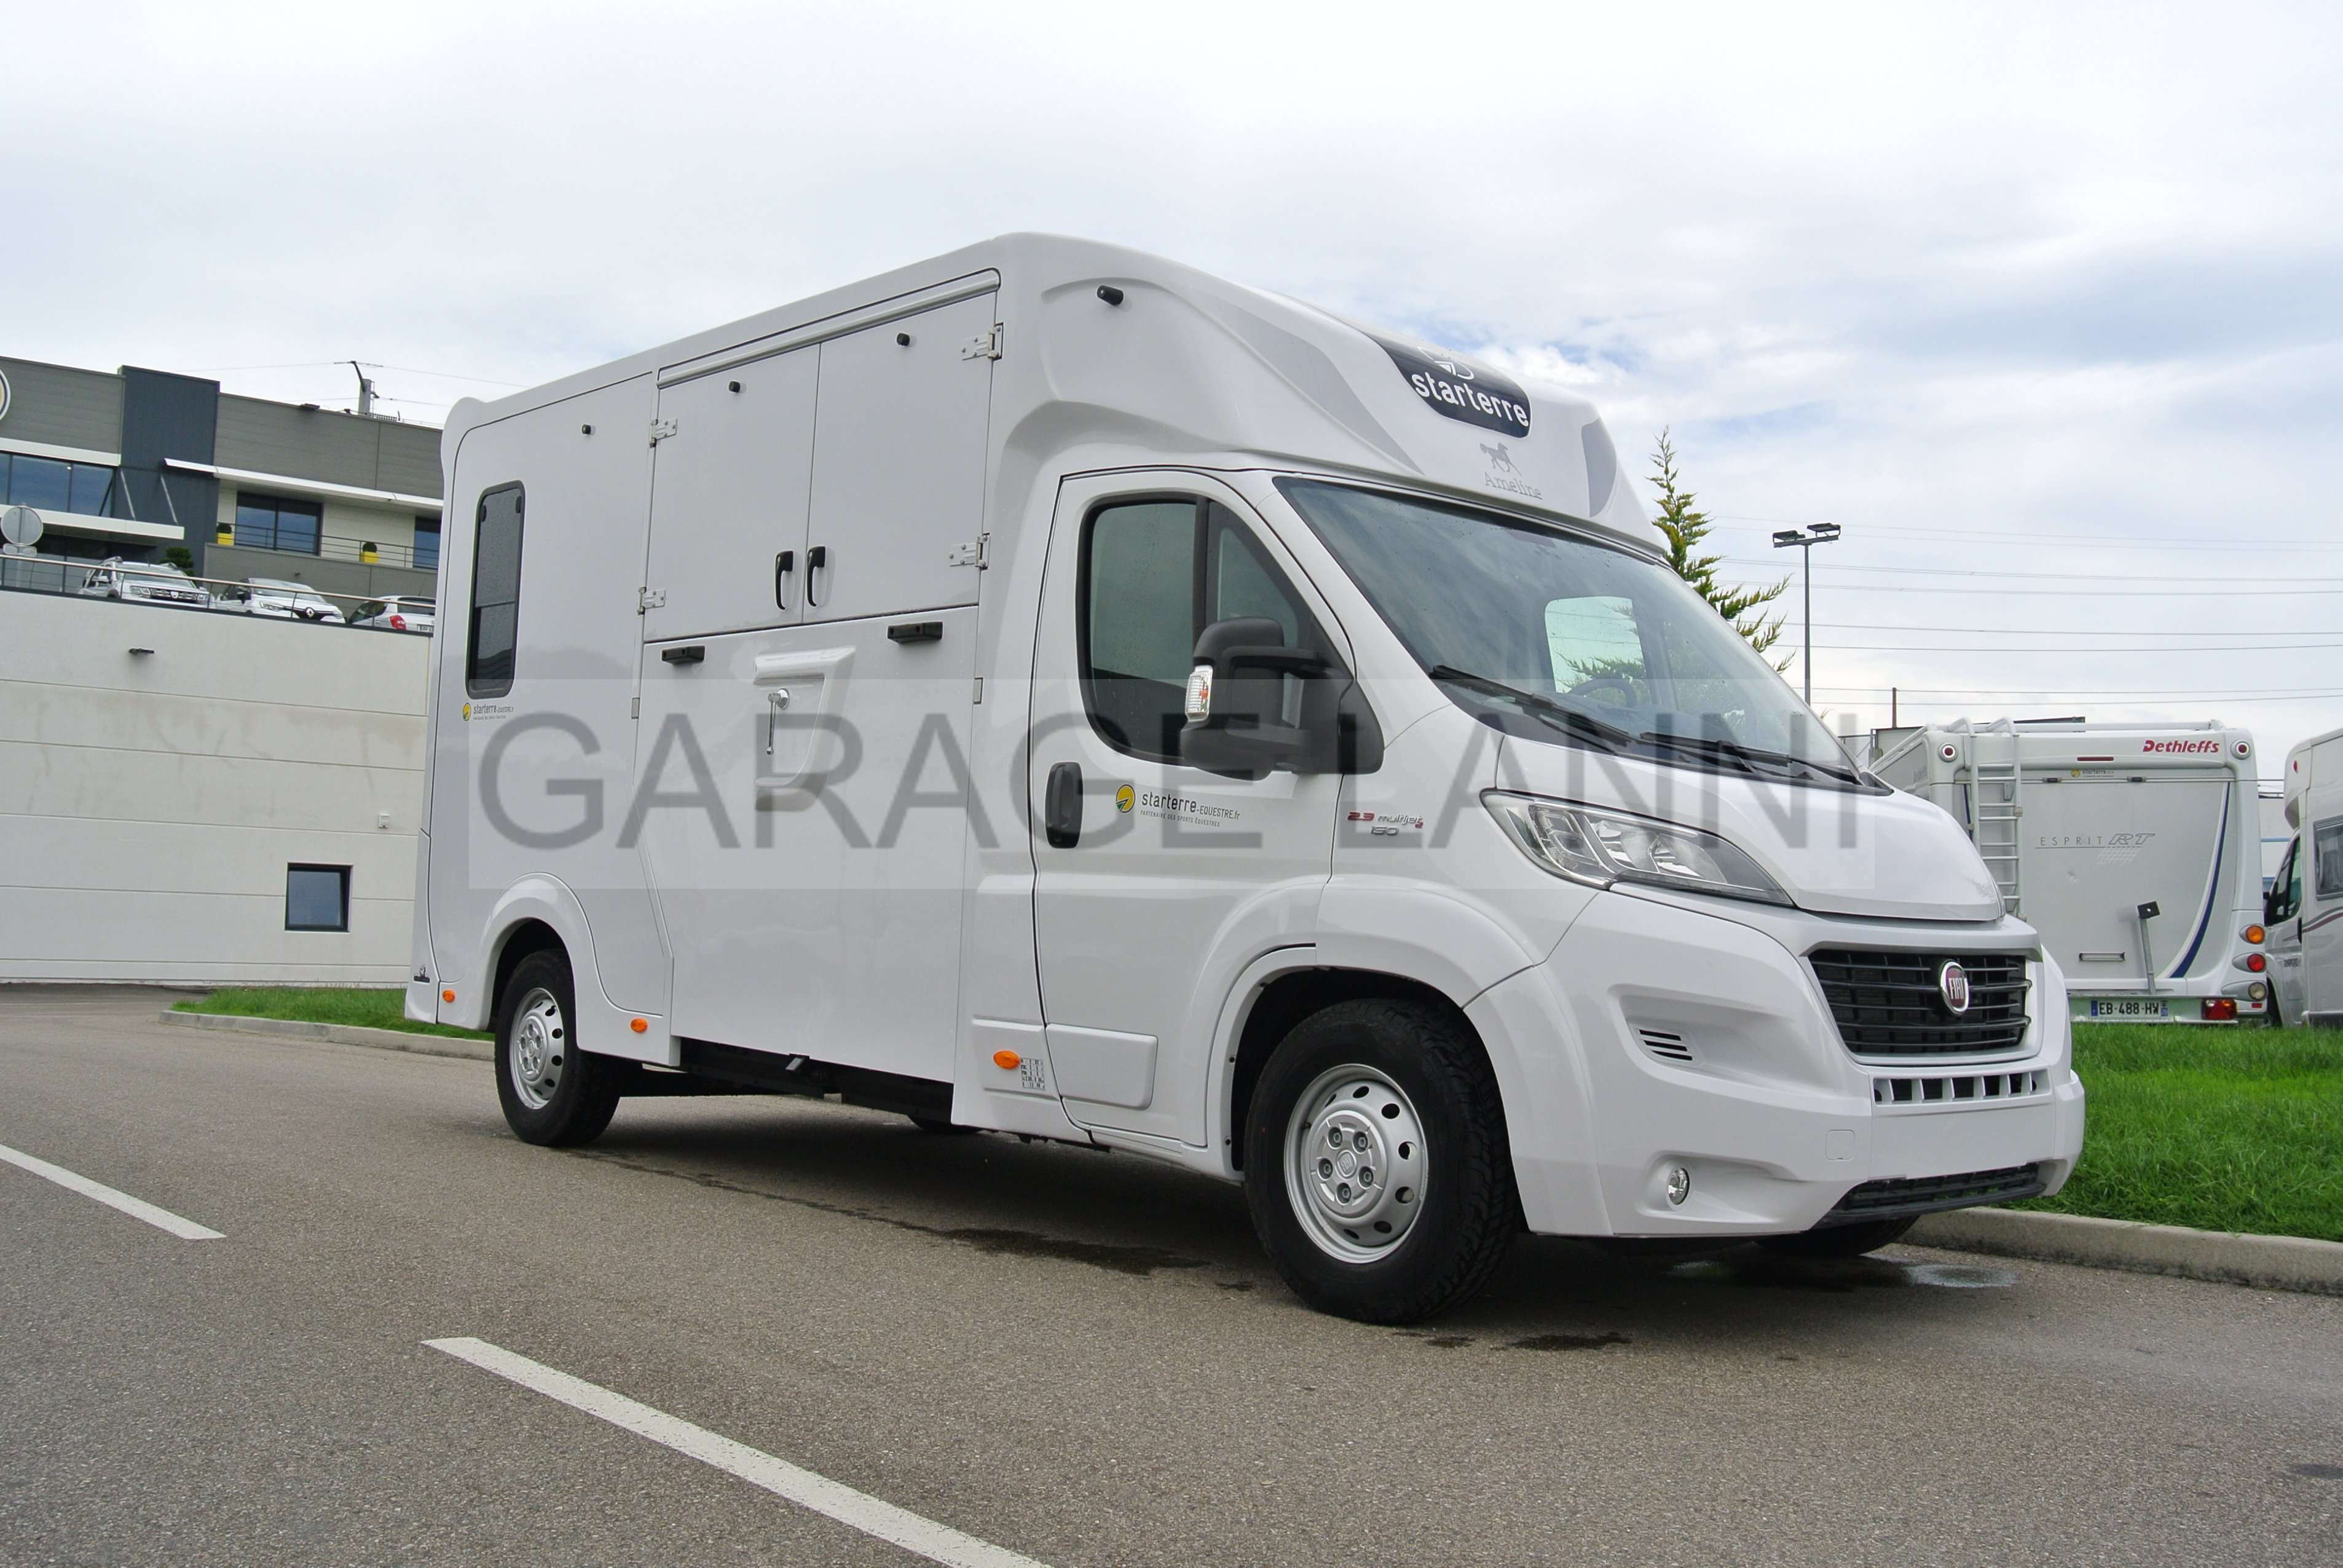 Camion Chevaux Aml Haras Grande Sellerie Chatenoy Le Royal